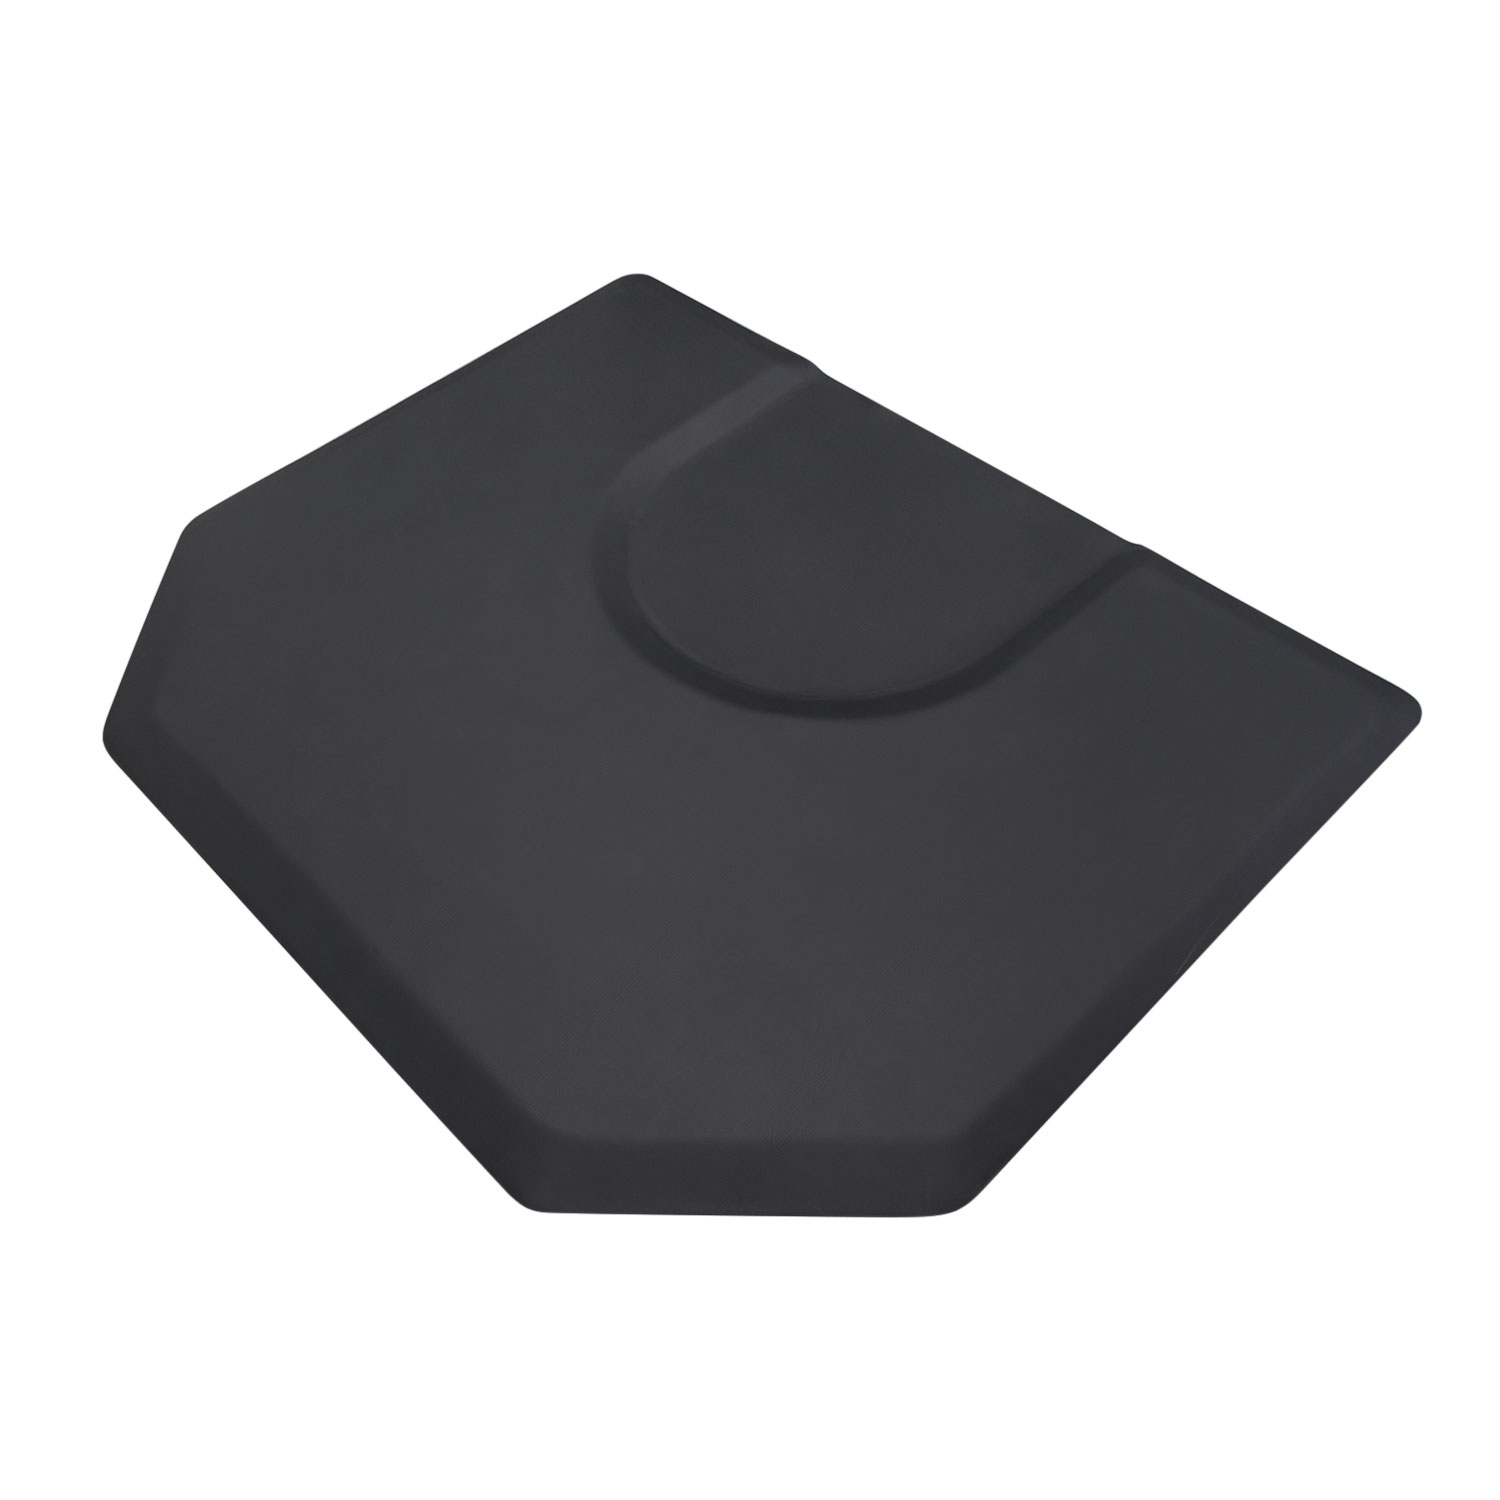 Hexagon 4x5 Salon Anti-Fatigue Mat Round Impression  main product image